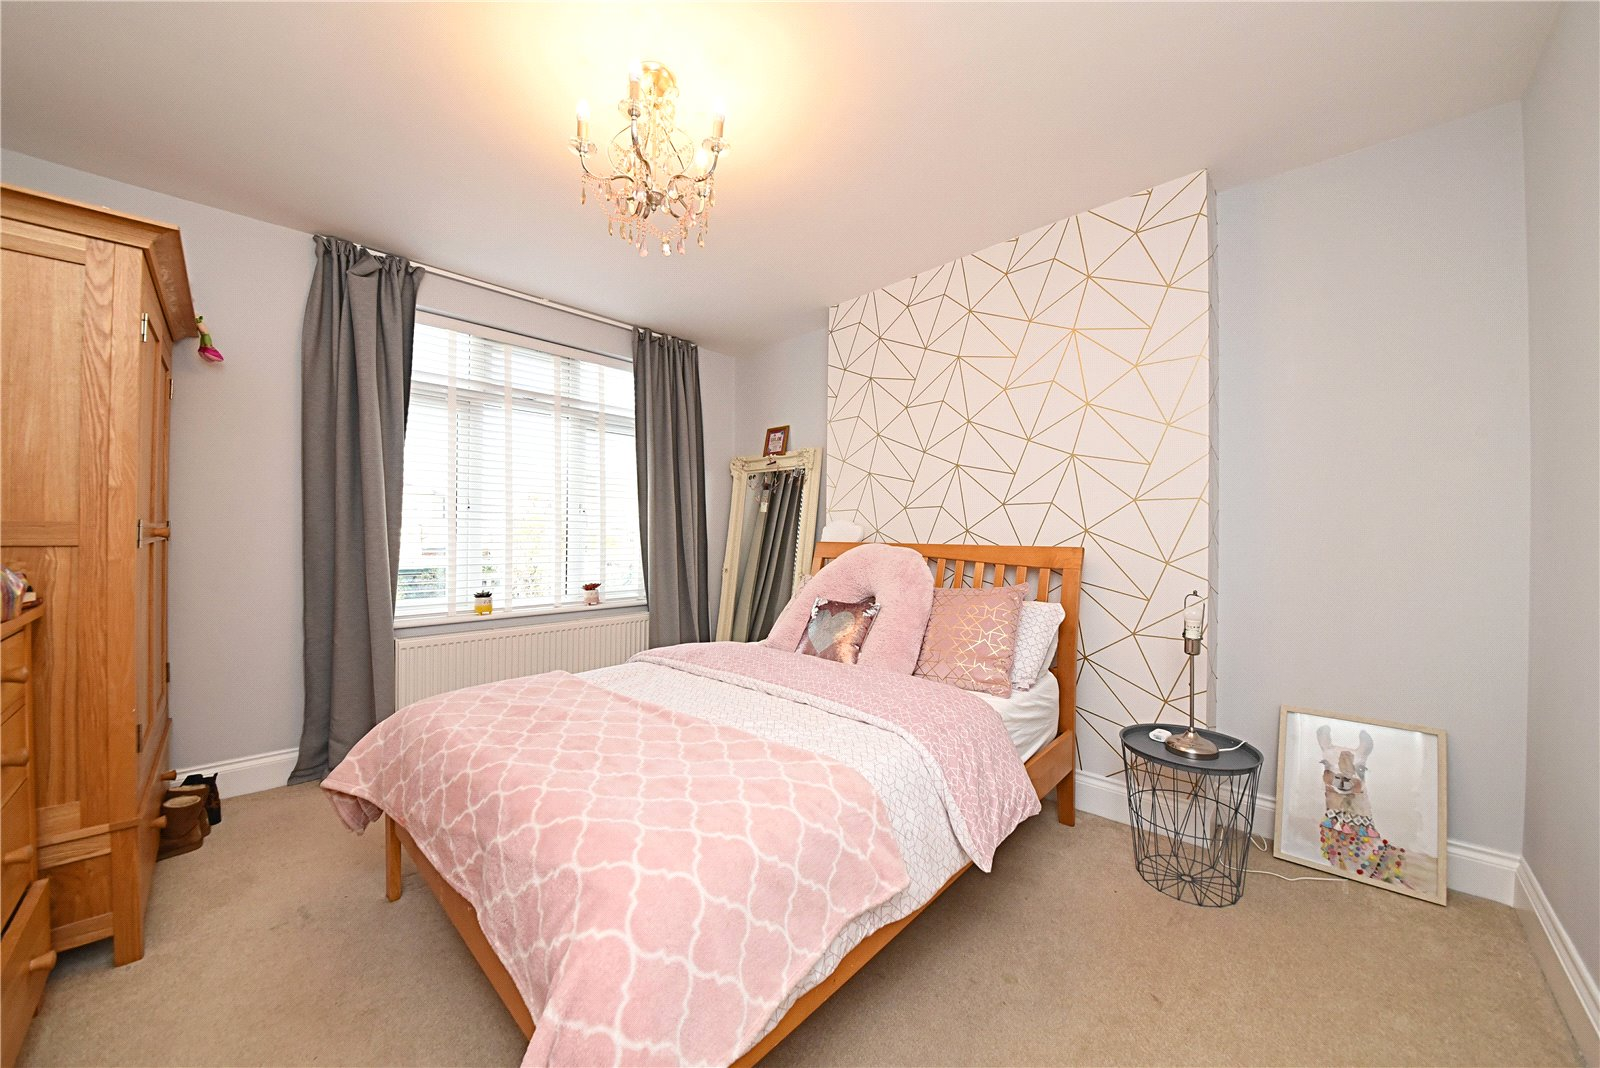 4 bed house for sale in Friern Barnet, N11 1HN 10